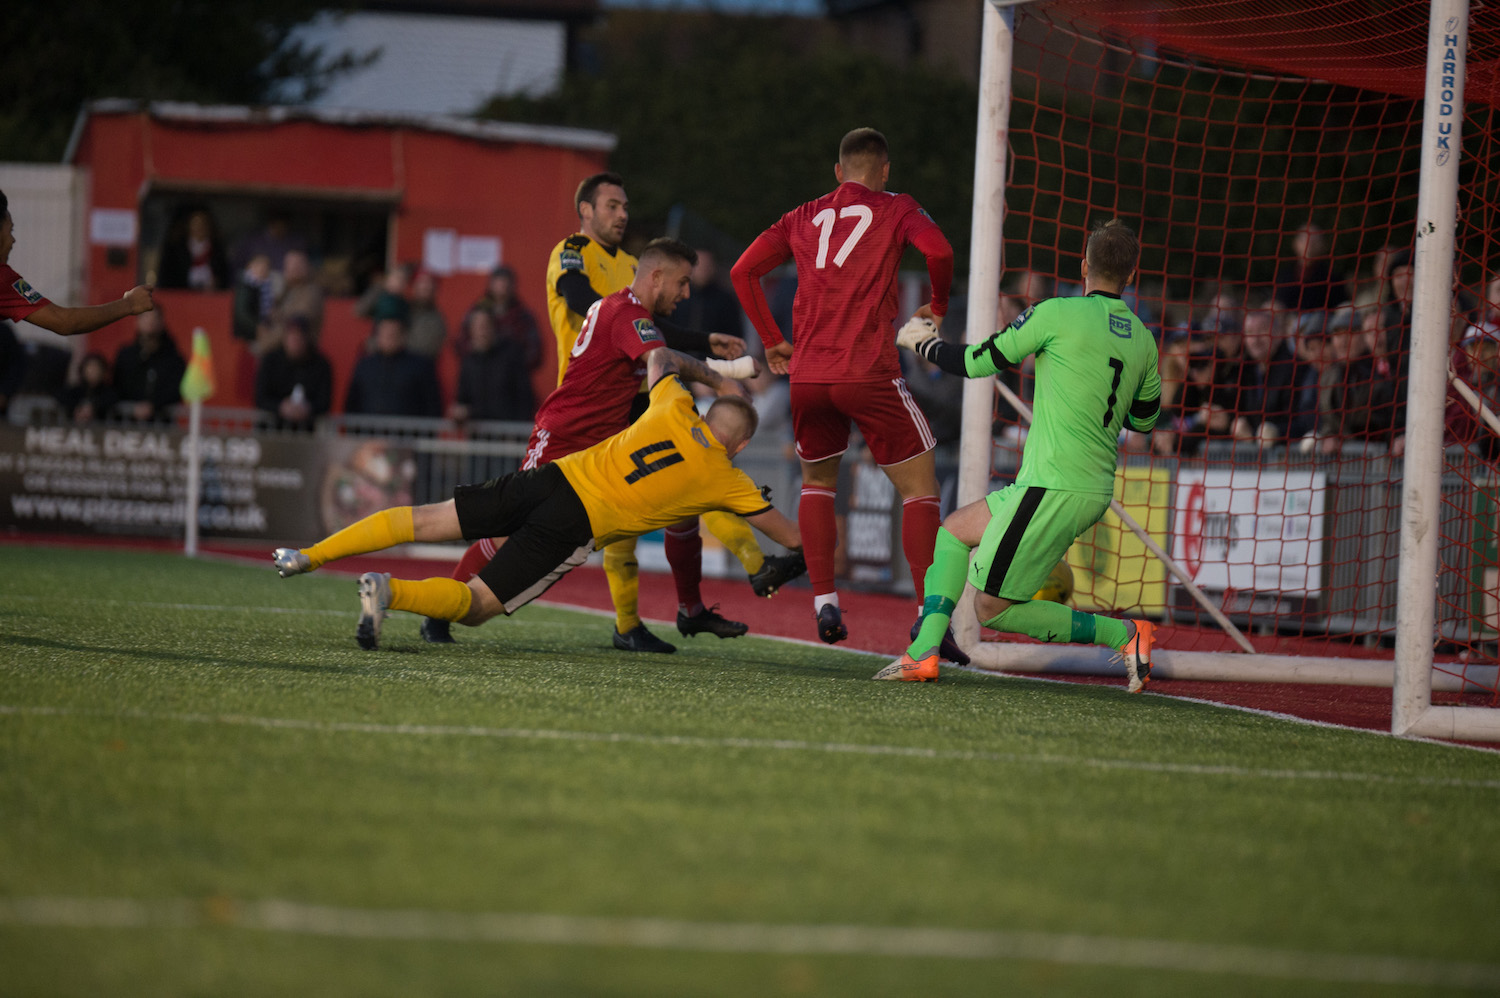 Read the full article - Returning Reece Rescues Reds